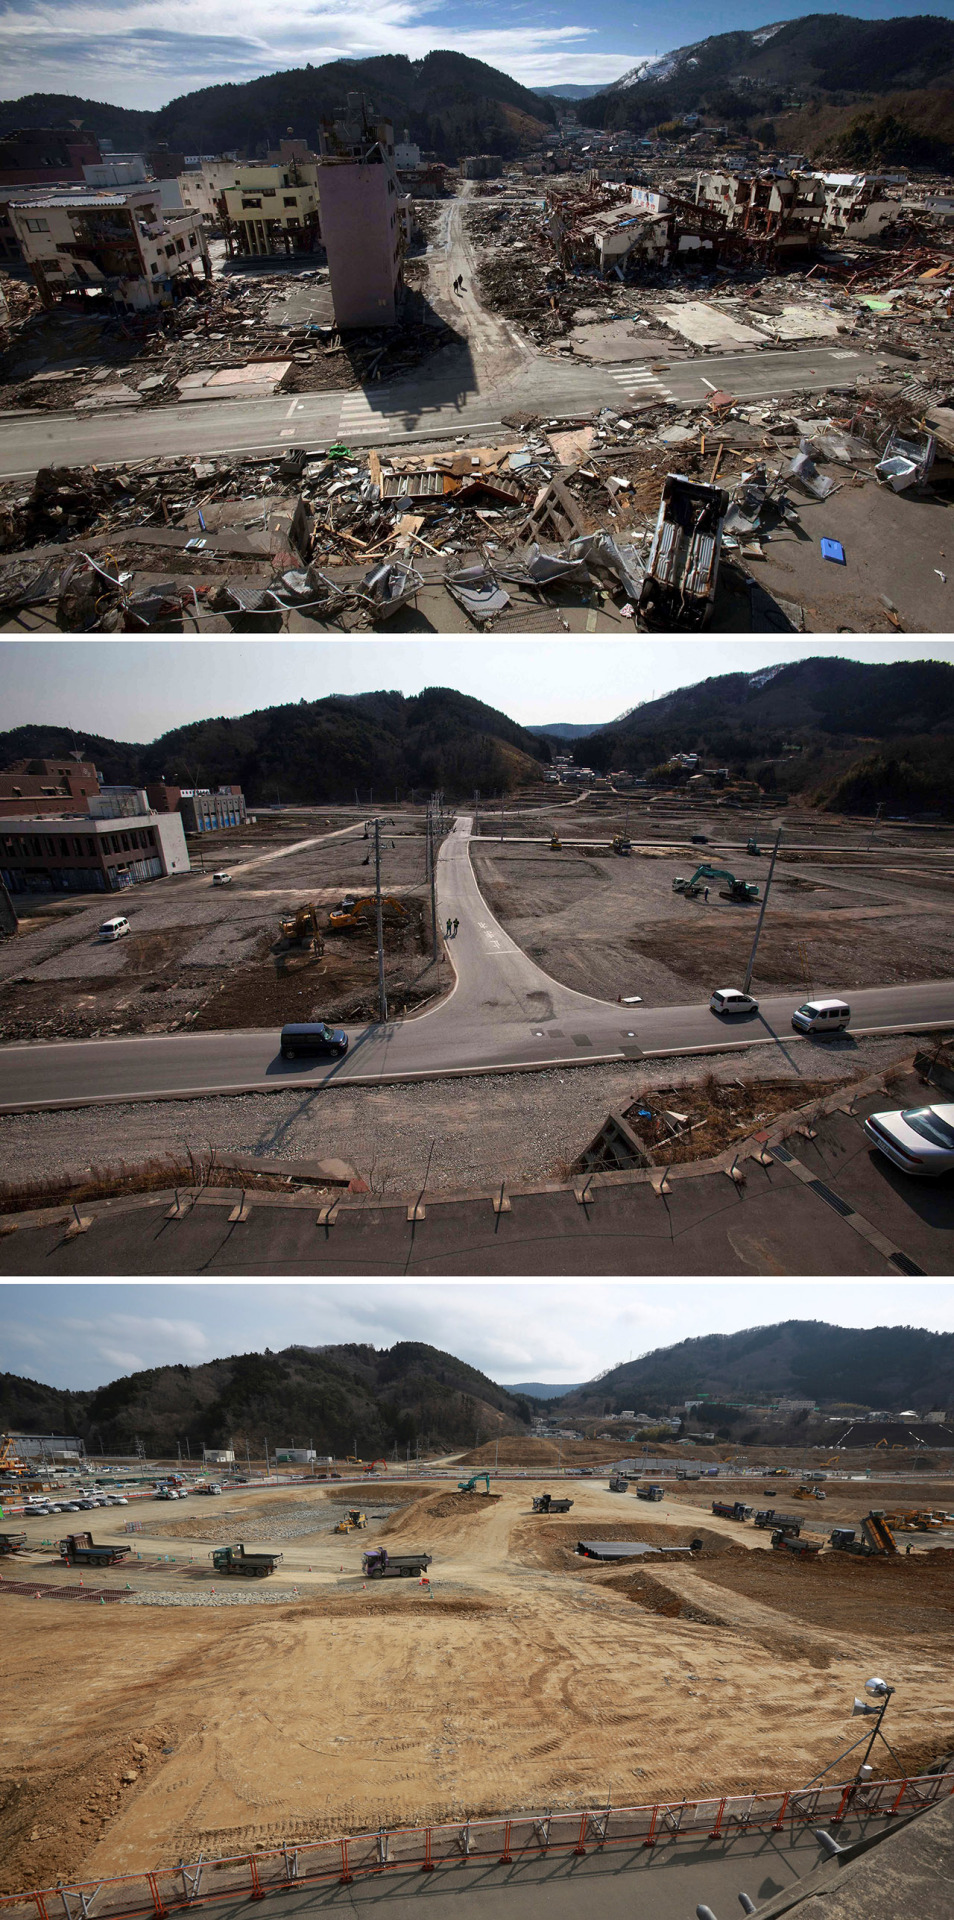 In this combination photo, two people walk along a street in a residential neighborhood in Onagawa, northeastern Japan, on March 19, 2011, top, eight days after the March 11 tsunami, two people walk on the same spot on Feb. 22, 2012, center, and a stream of trucks go through the same area on Saturday, March 5, 2016. Five years after the disaster, construction work is clearly underway but far from done. Rebuilt roads stretch to the horizon between still largely vacant expanses. It is a massive undertaking to raise the ground level of entire neighborhoods, to better protect them from inundation, before rebuilding from scratch. (AP Photo/David Guttenfelder and Eugene Hoshiko)